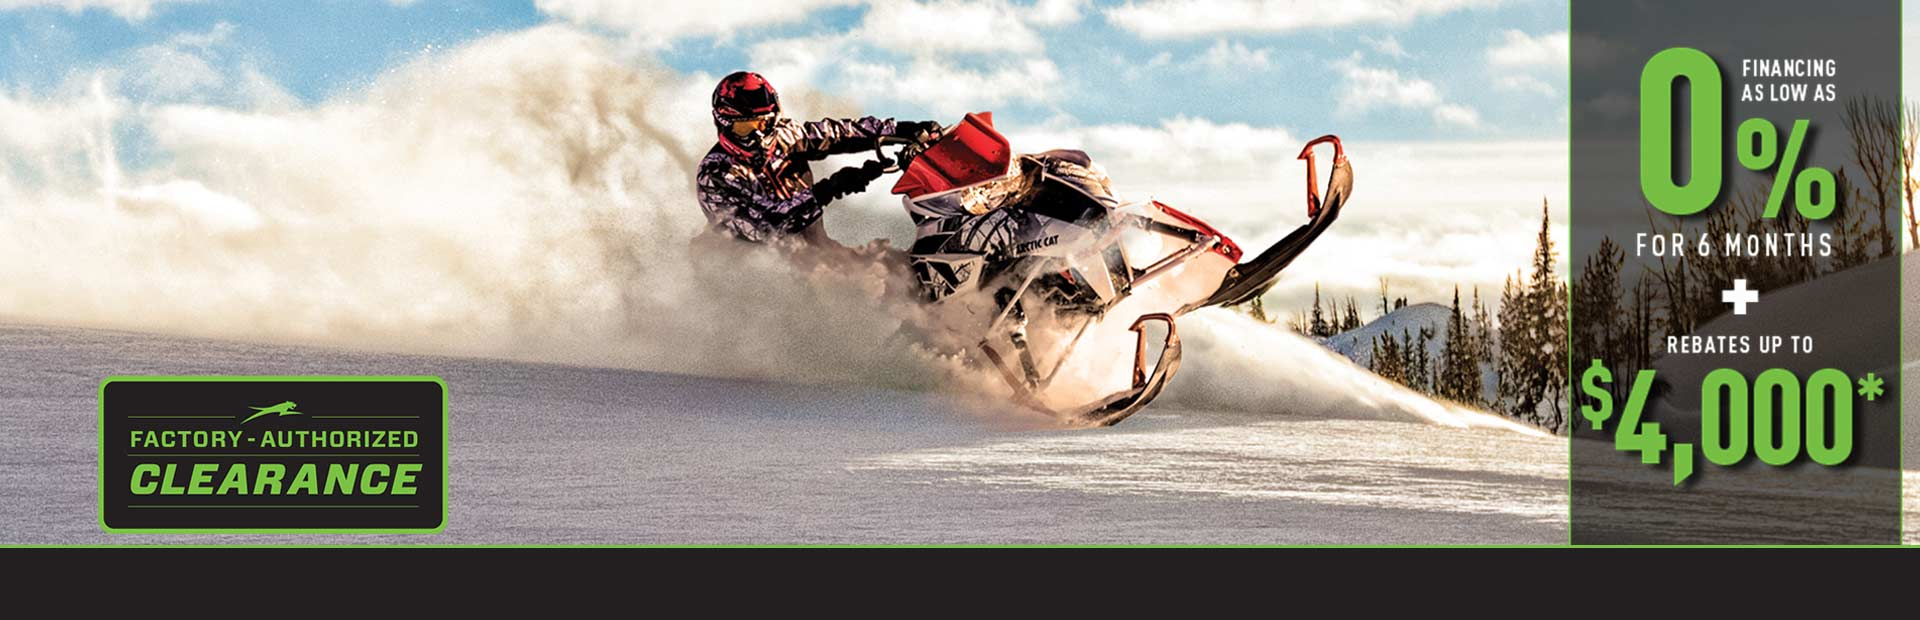 Arctic Cat: Factory Authorized Clearance on Snowmobiles